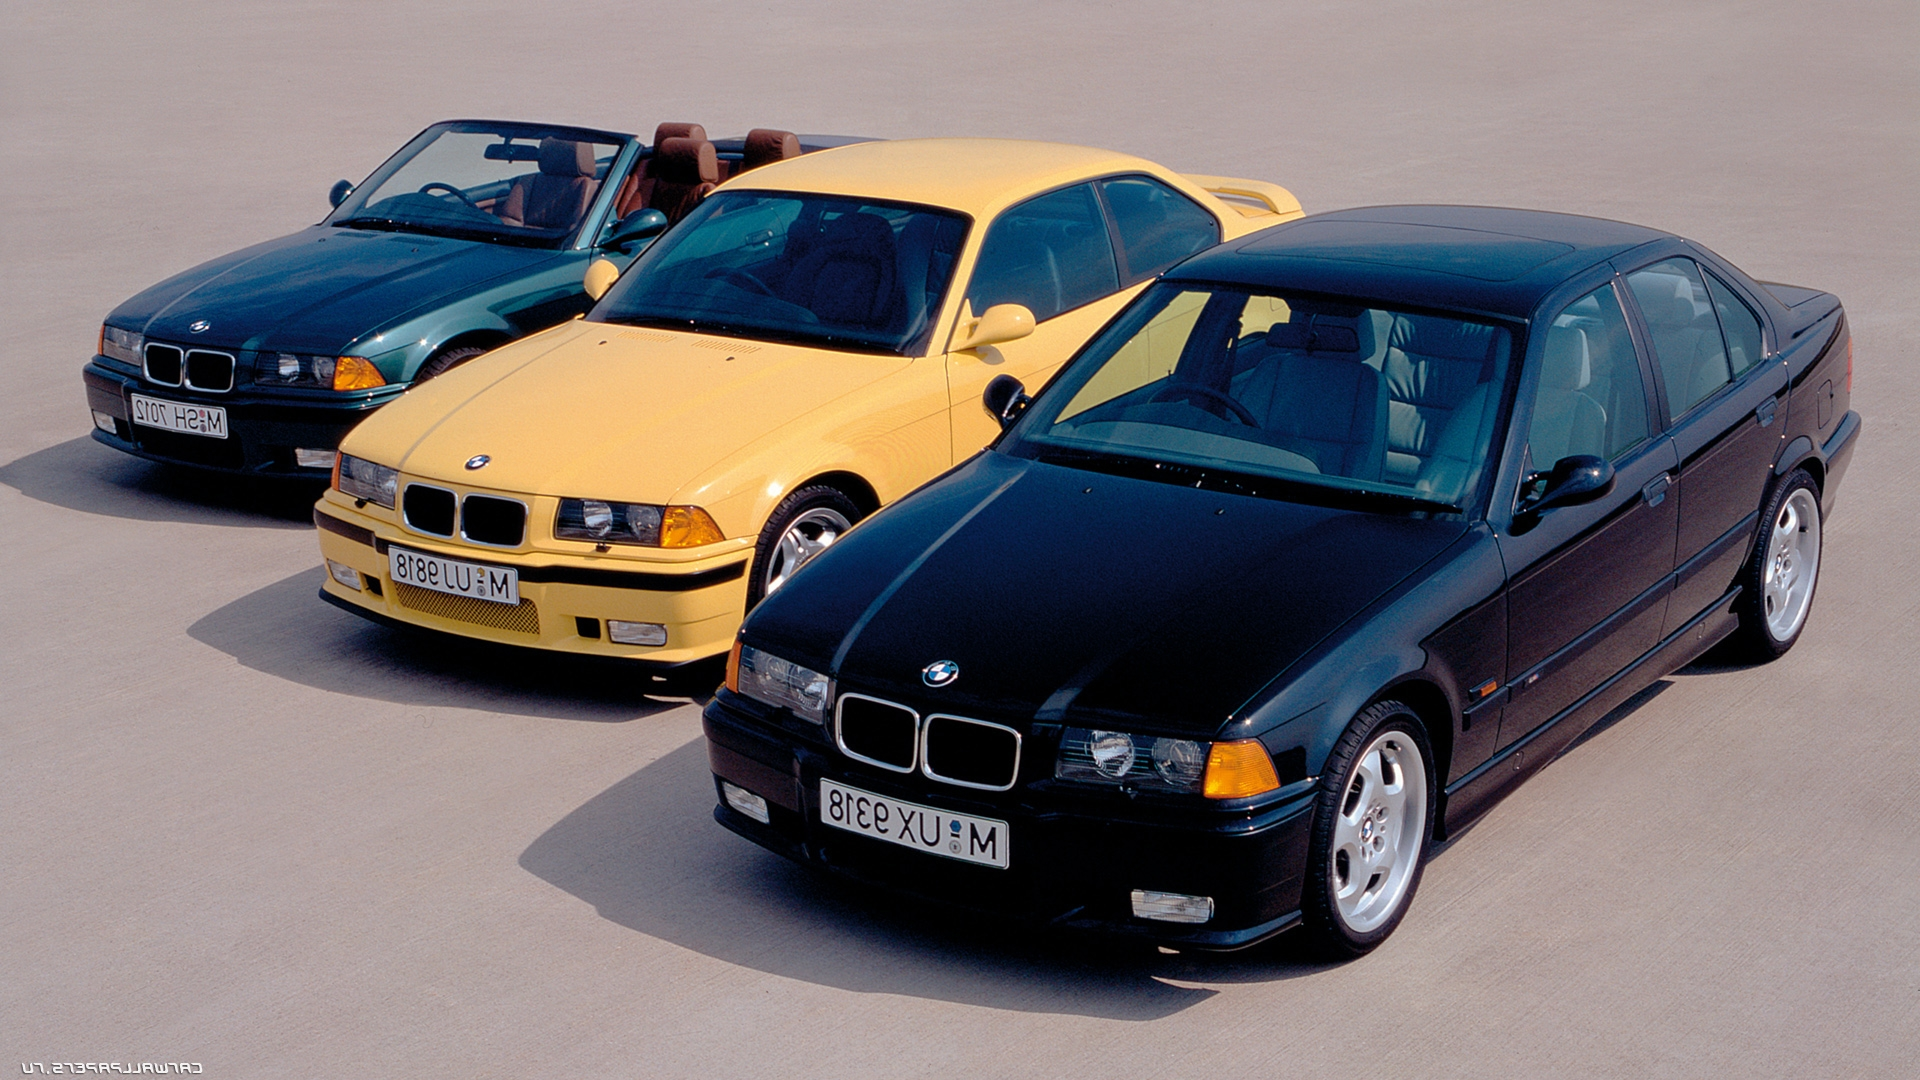 bmw m3 e36 bmw blog news pictures comparisons reviews bmw m3 e36 1992 1920x1080